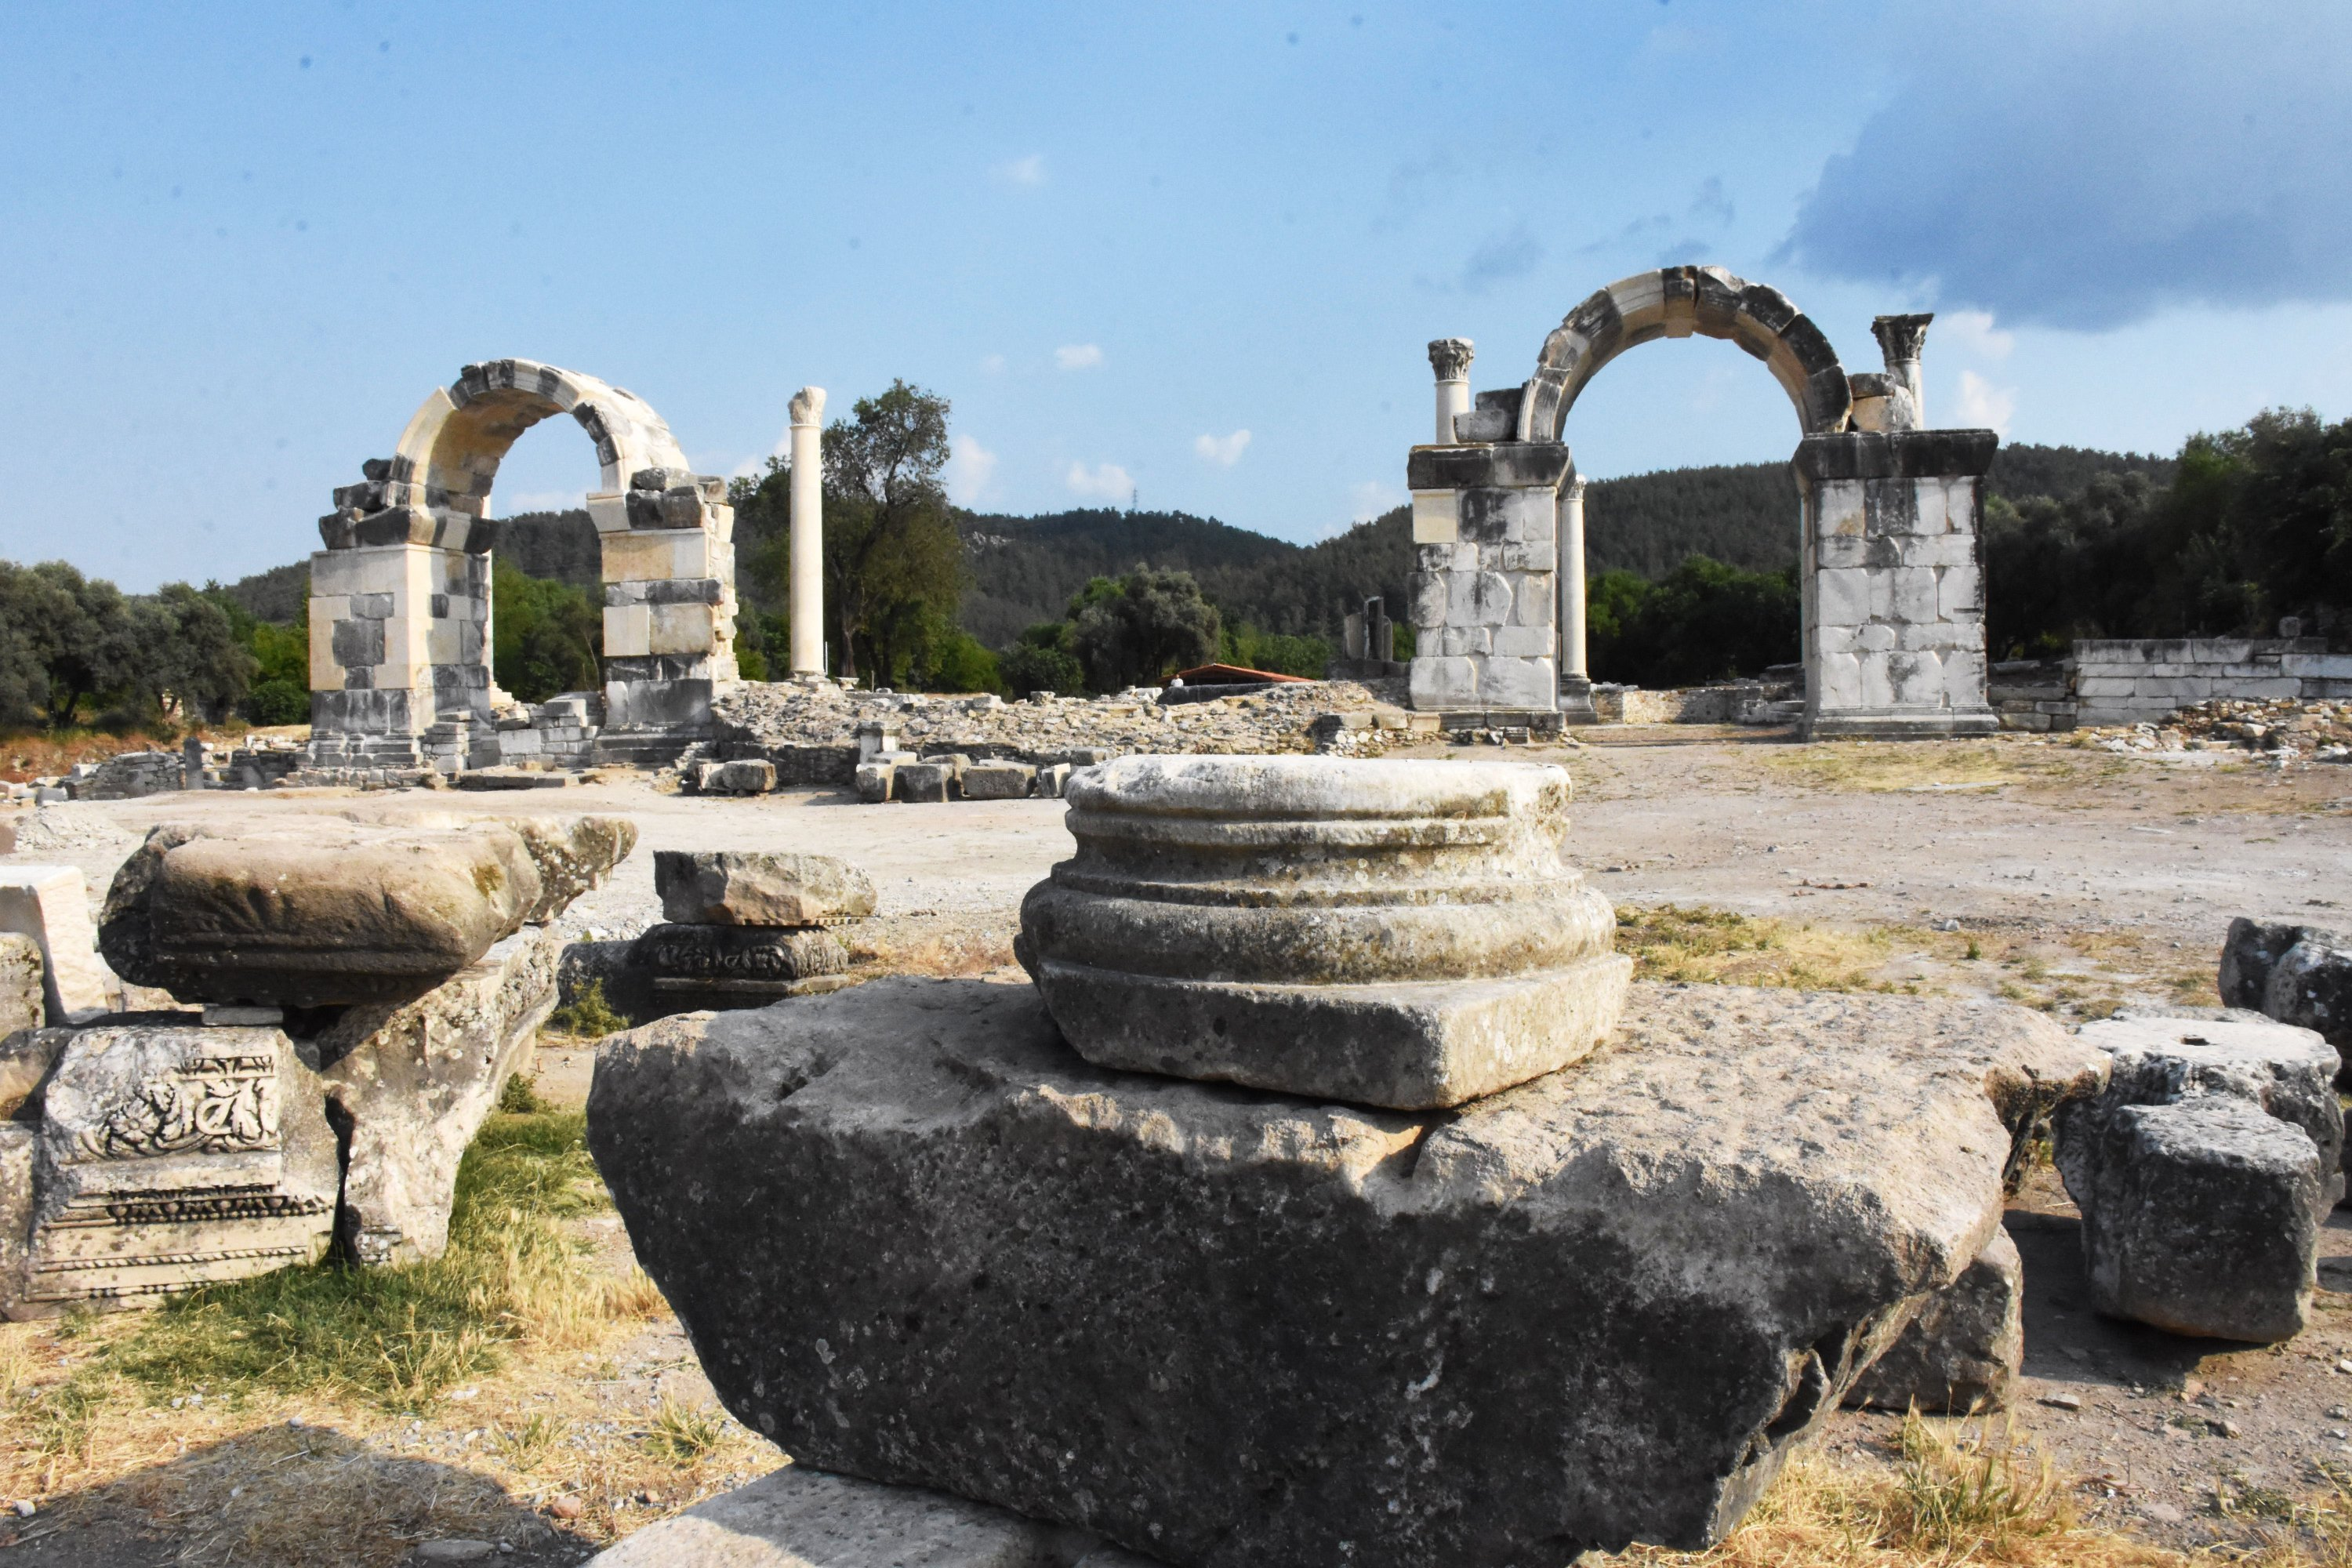 The recently restored northern arched gates ofthe ancient city of Stratonikeia stand in front of a columnaded square in Muğla, Turkey, June 13, 2021. (AA Photo)